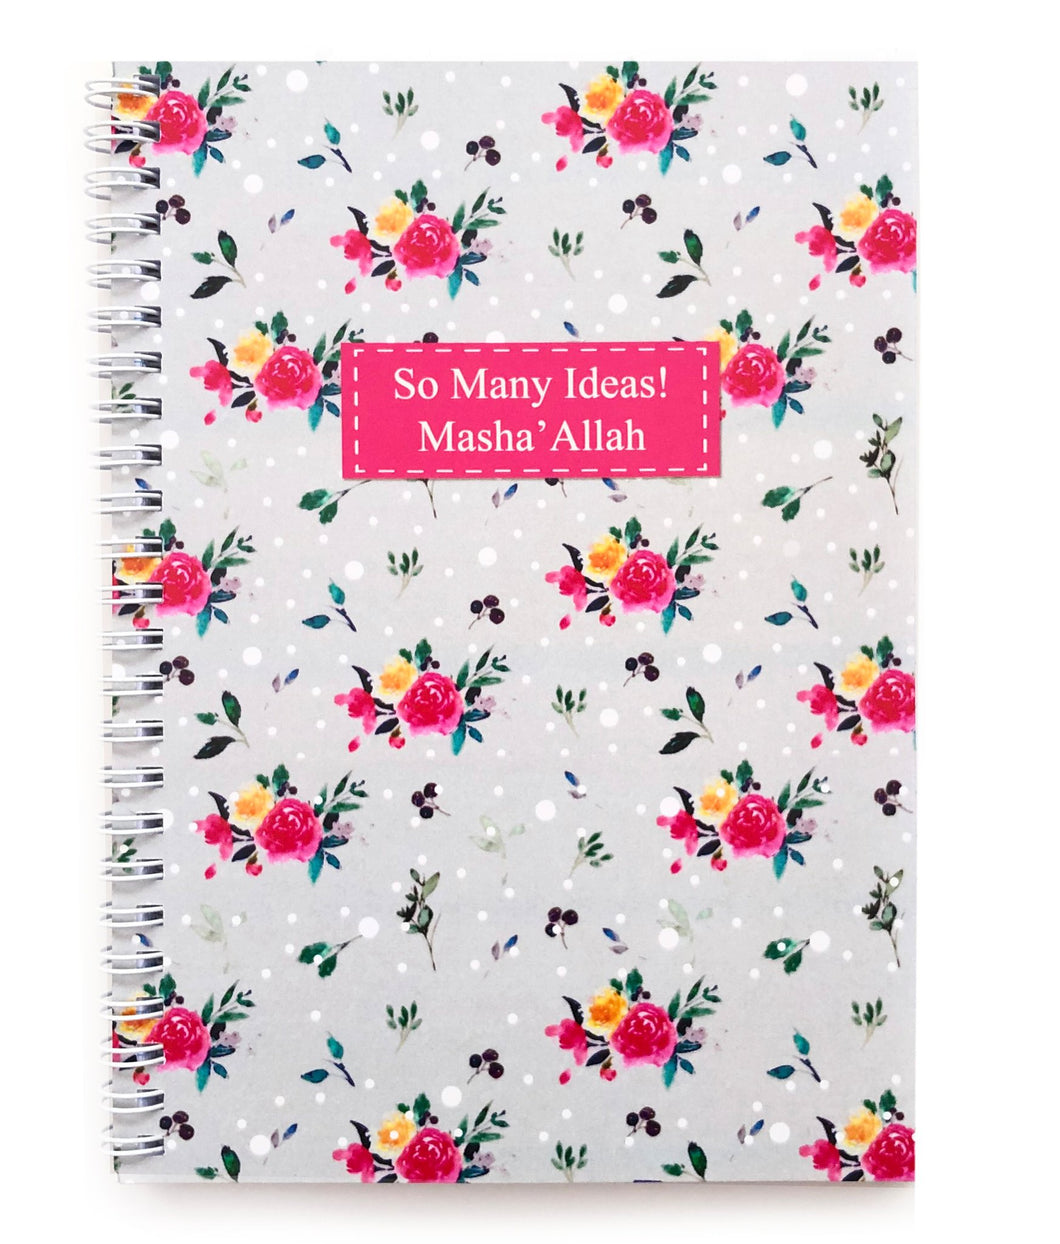 So Many Ideas! Masha'Allah - Wiro Notebook